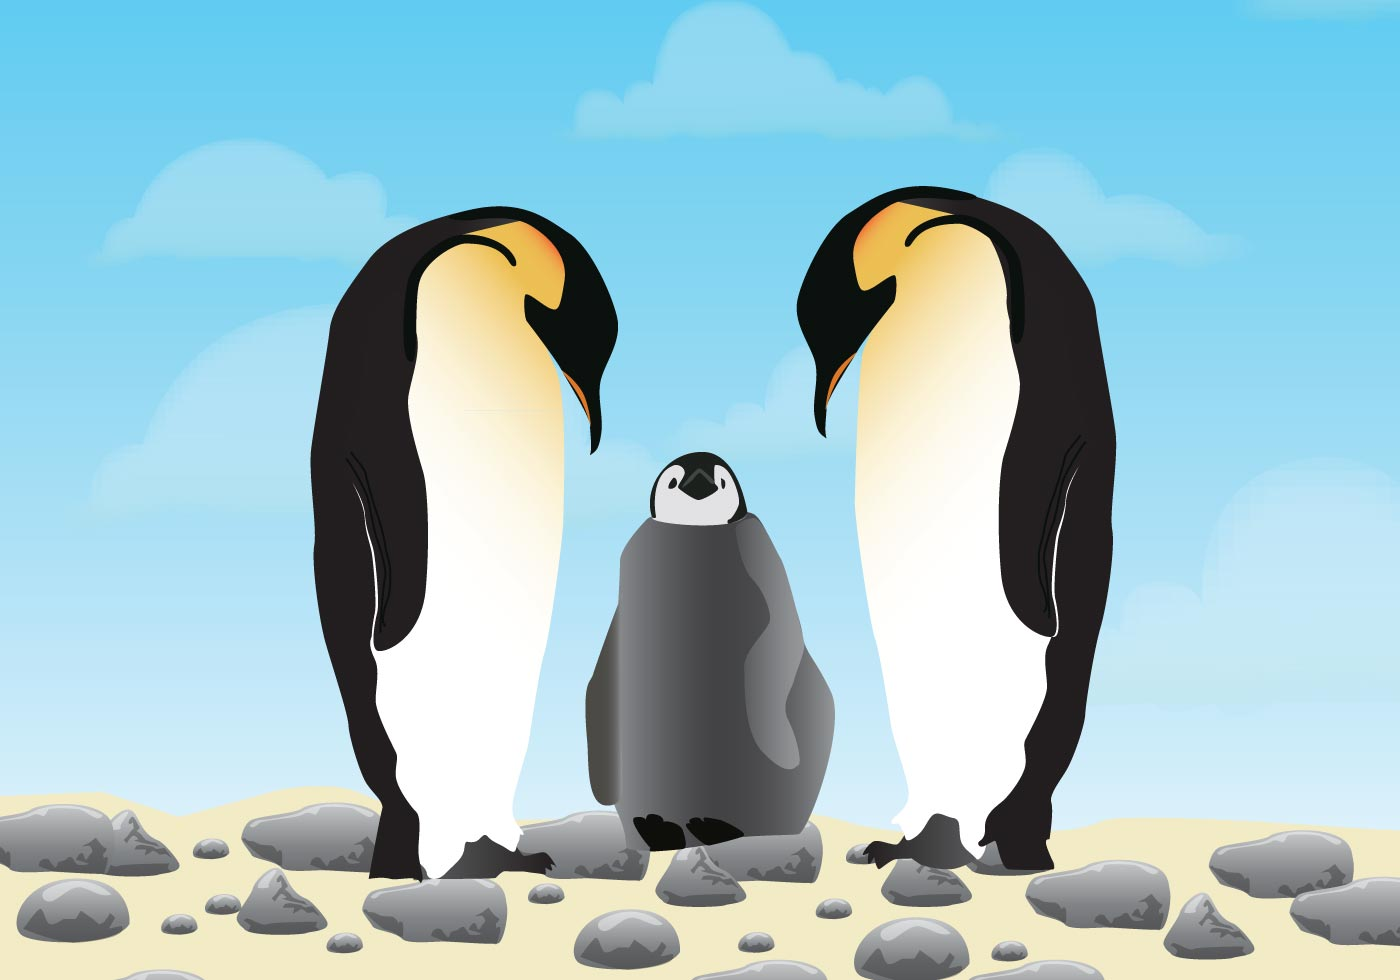 Cute Couple Cartoon Wallpaper Download Penguins In Love Download Free Vector Art Stock